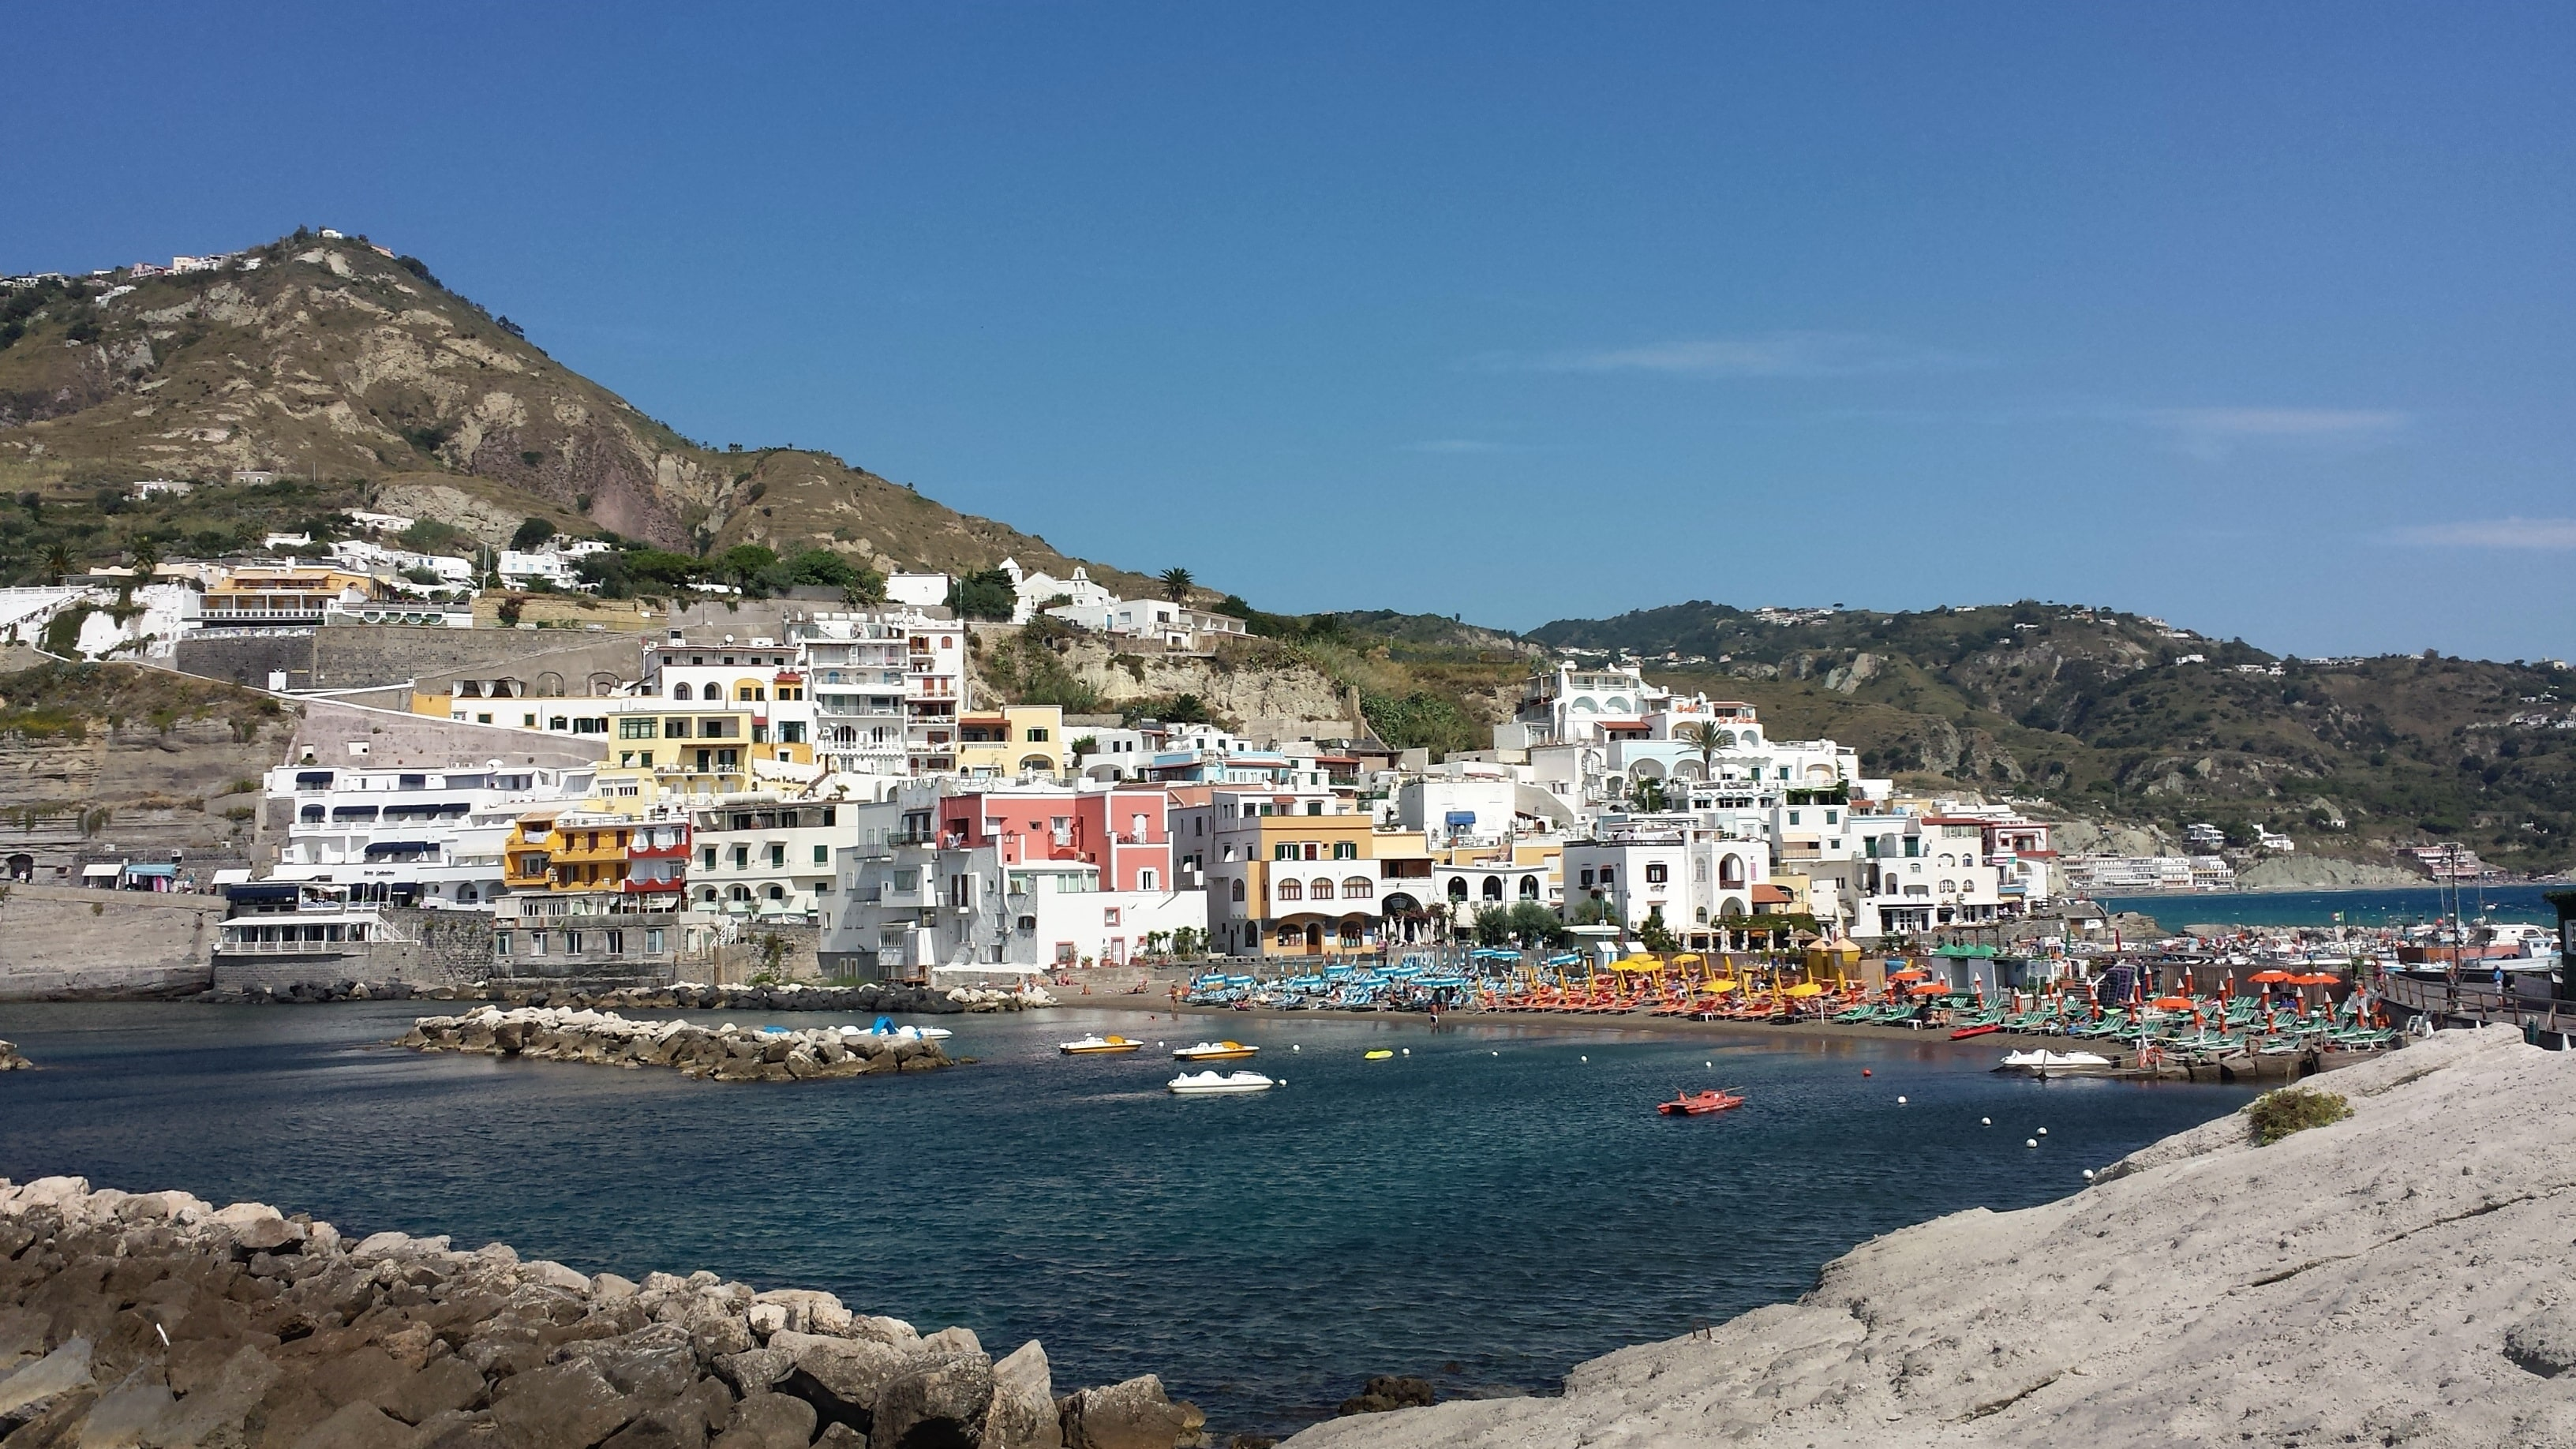 Taking the ferry to Ischia is a unique thing to do in Italy